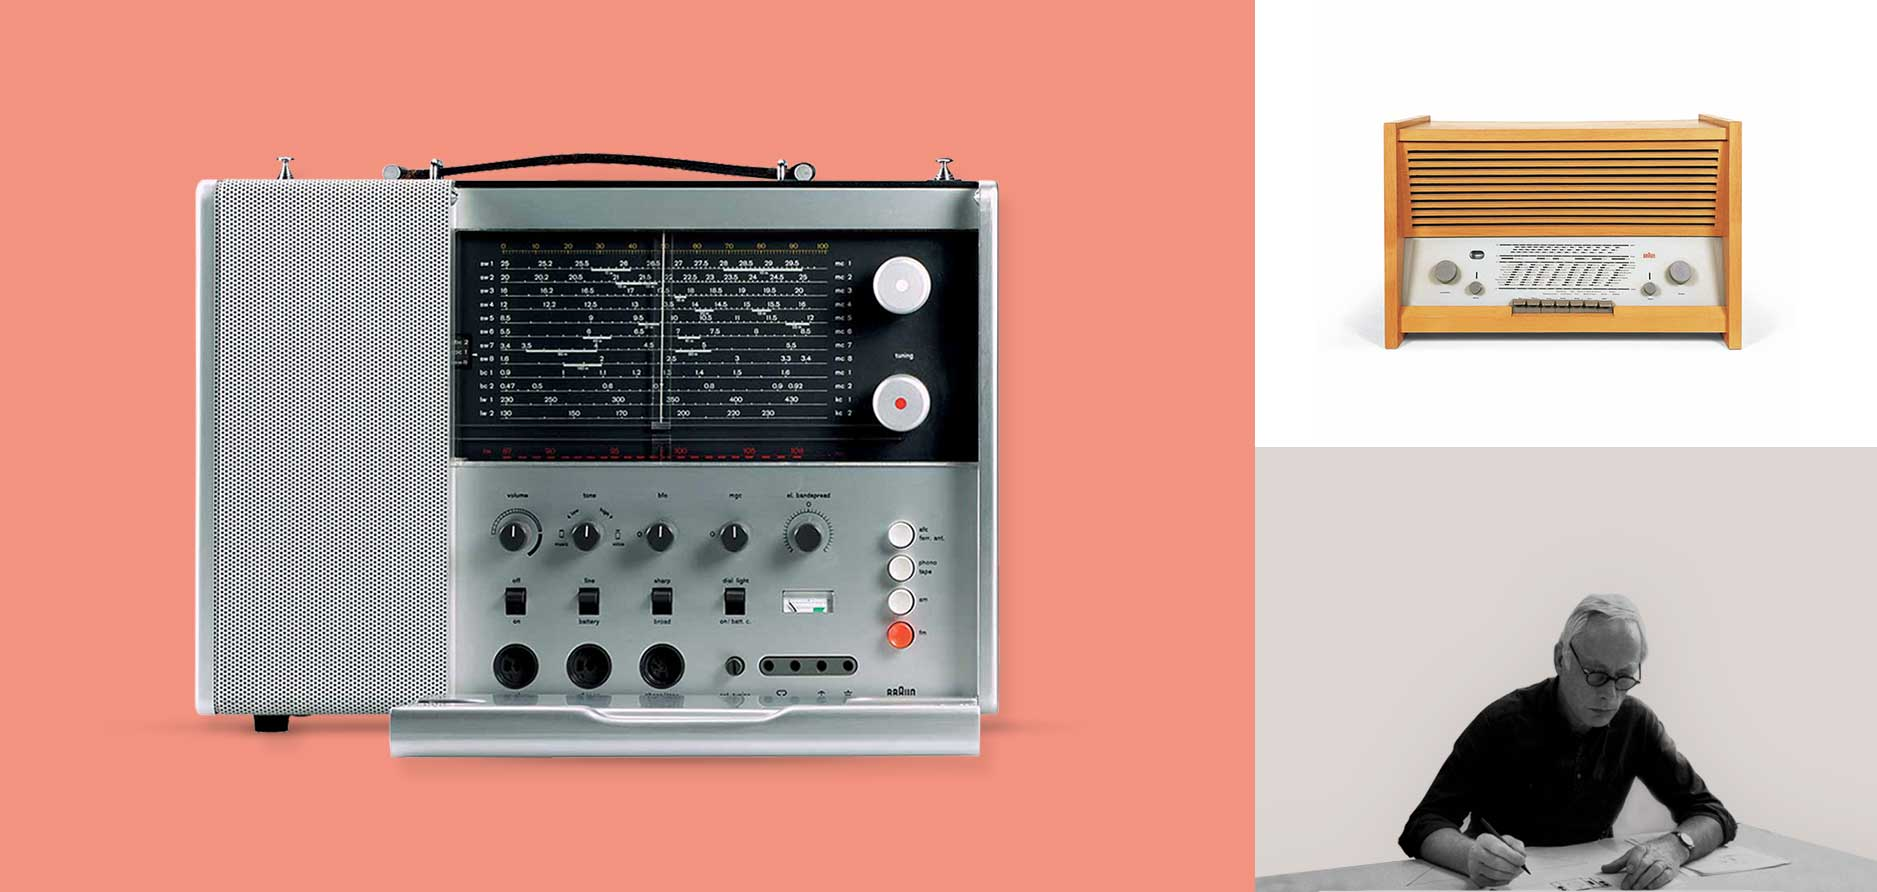 The new design concept and start of the era Dieter Rams